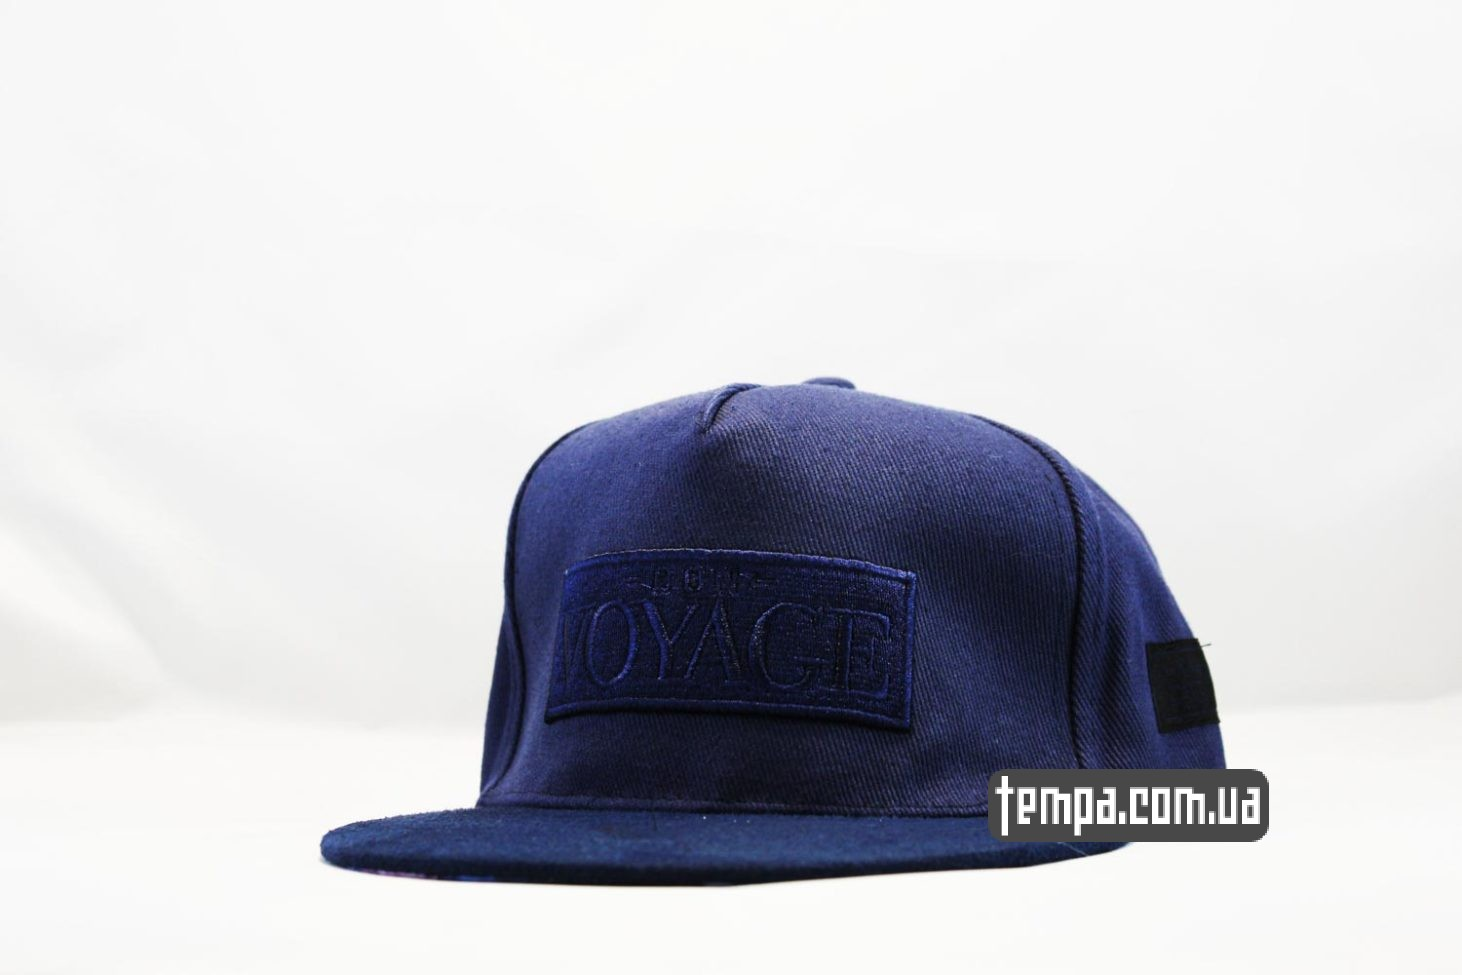 кепка snapback Cayler And Sons Voyage синяя dont voyage